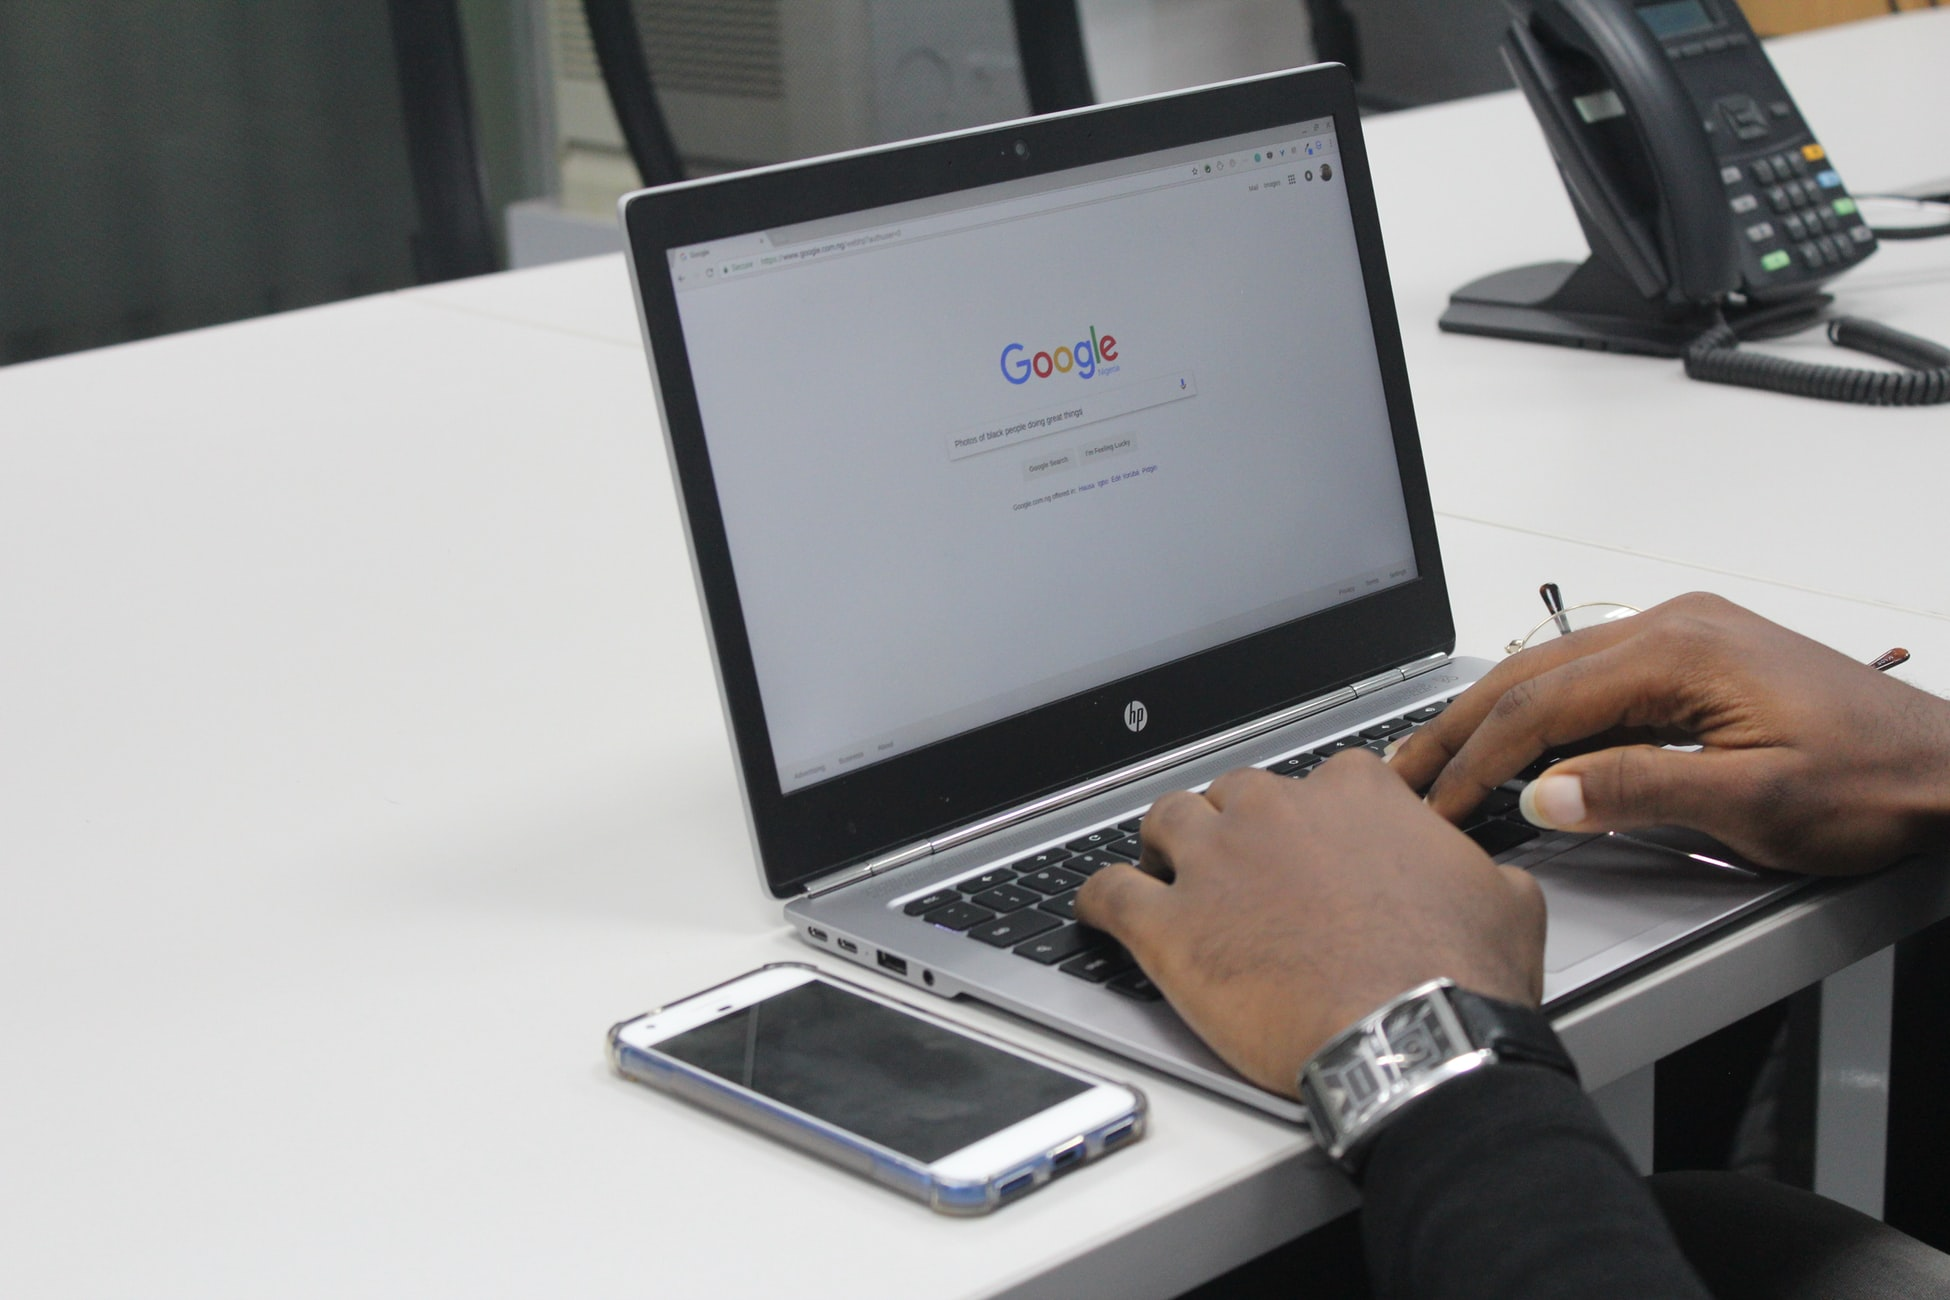 Person searching on Google.